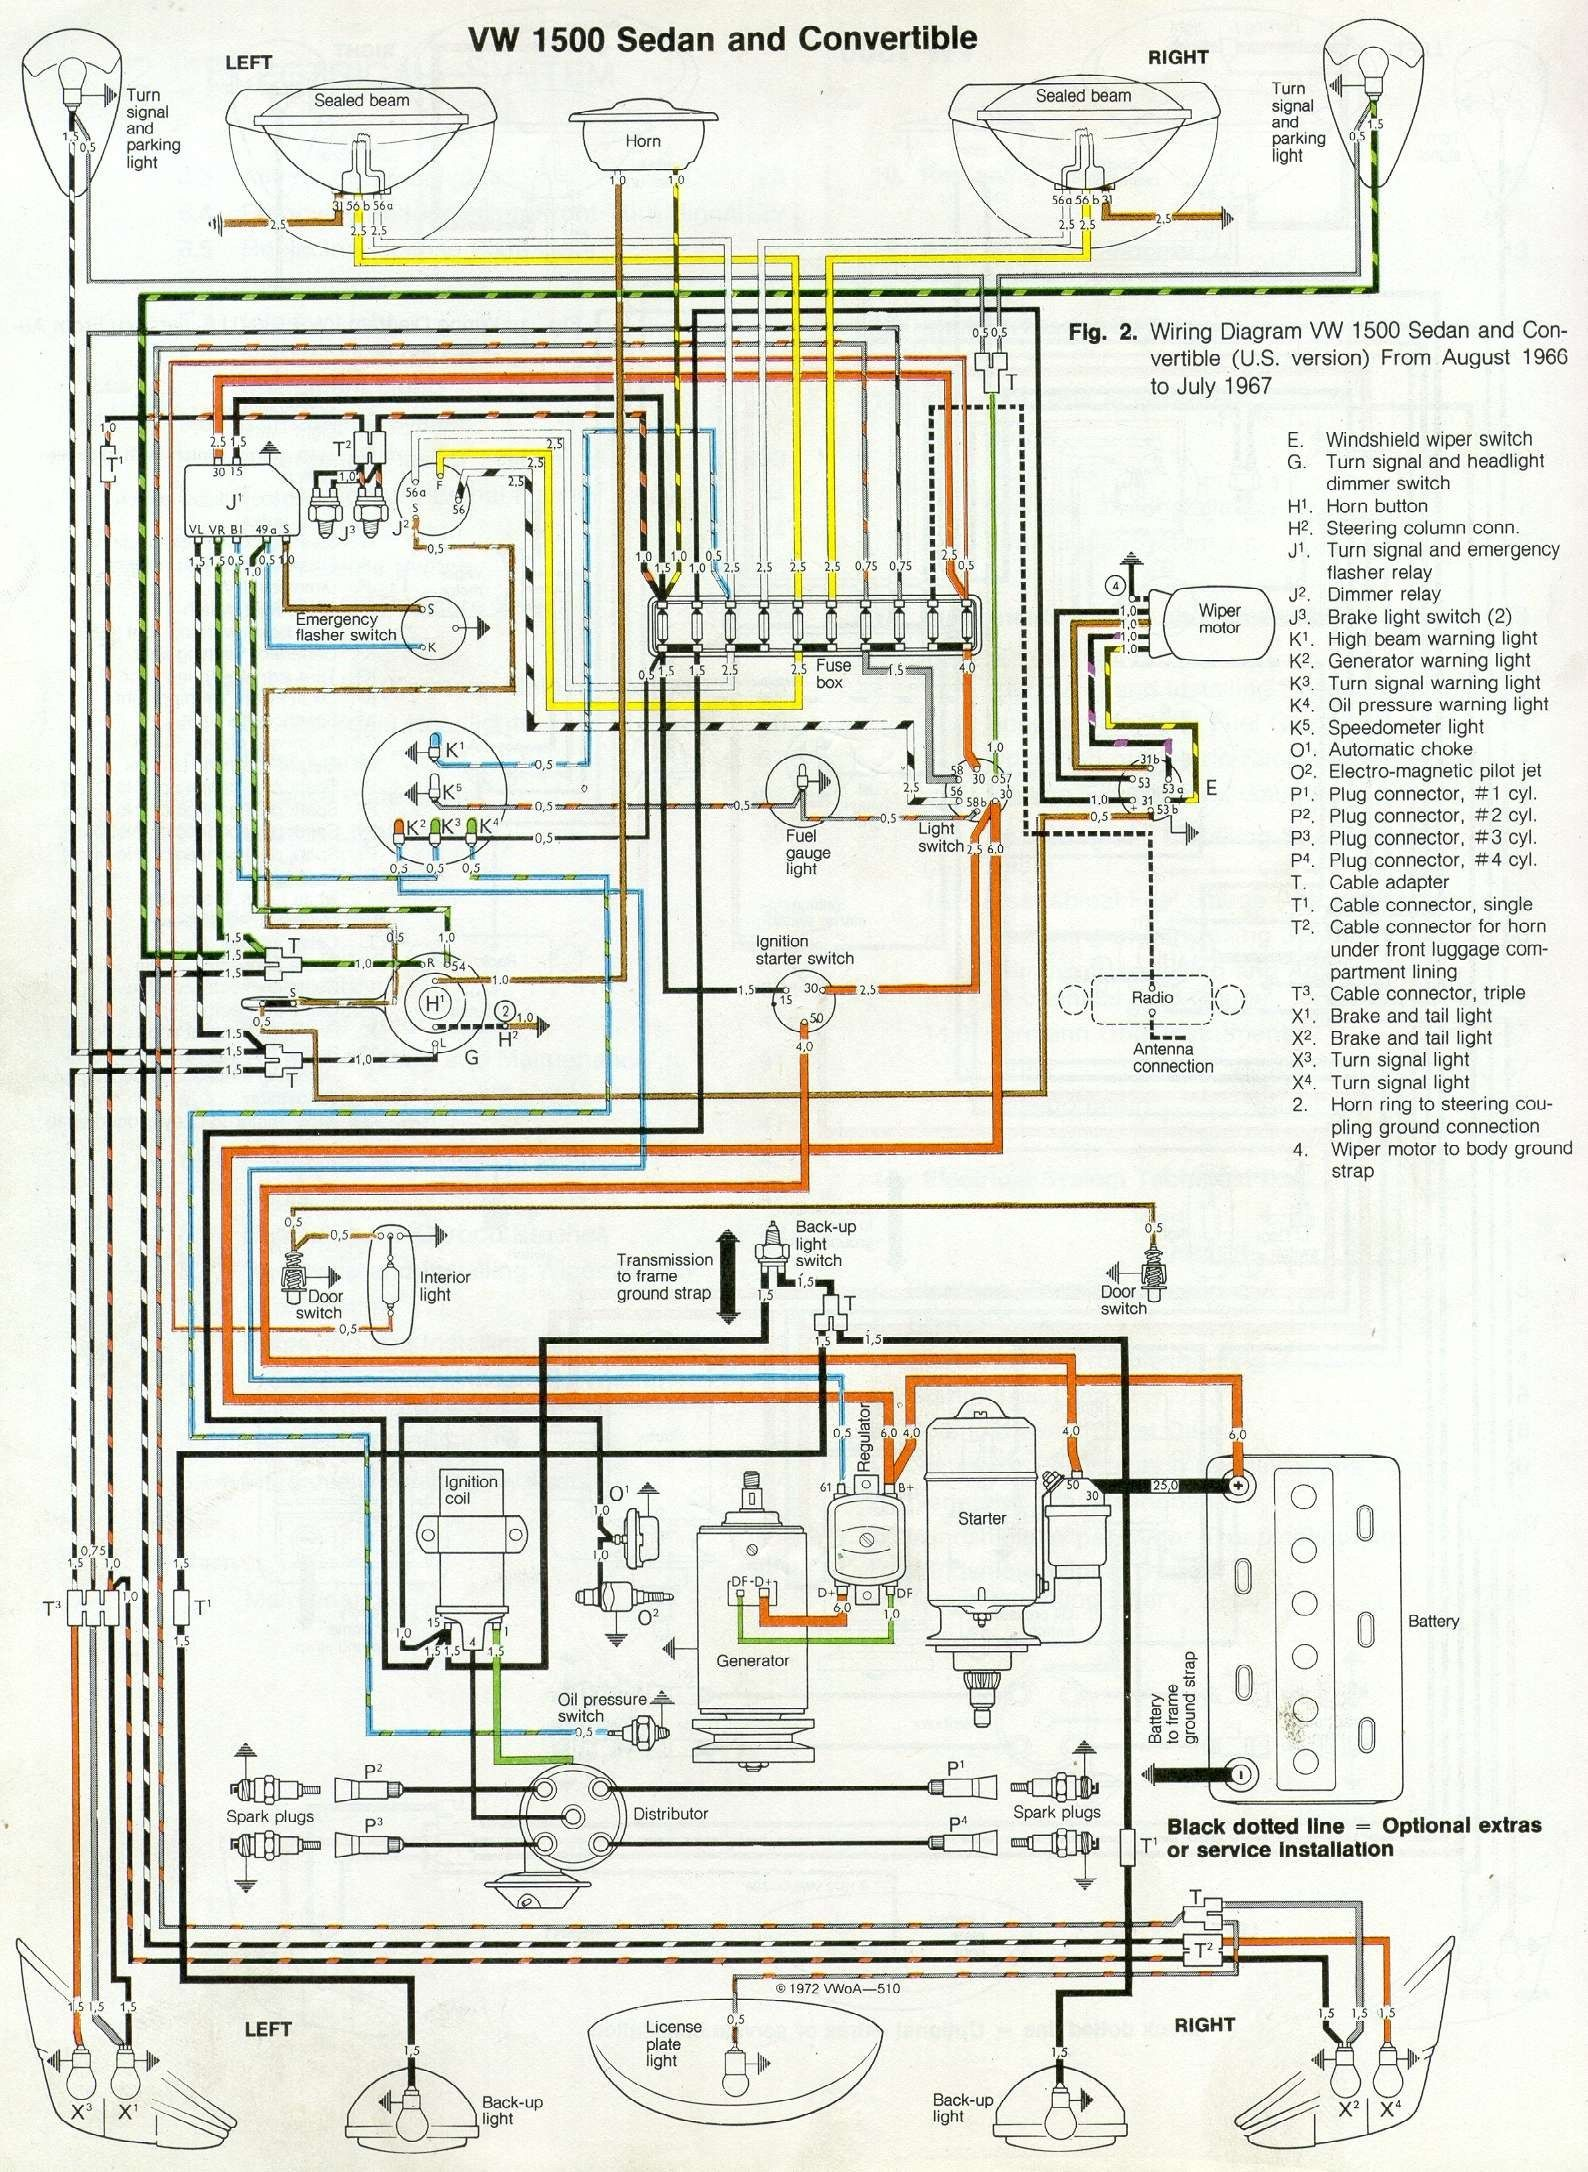 4242b403314c20cc70fd2f9bfdeb7727 66 and '67 vw beetle wiring diagram vw beetles, beetles and EZ Wiring Harness Diagram Chevy at gsmx.co